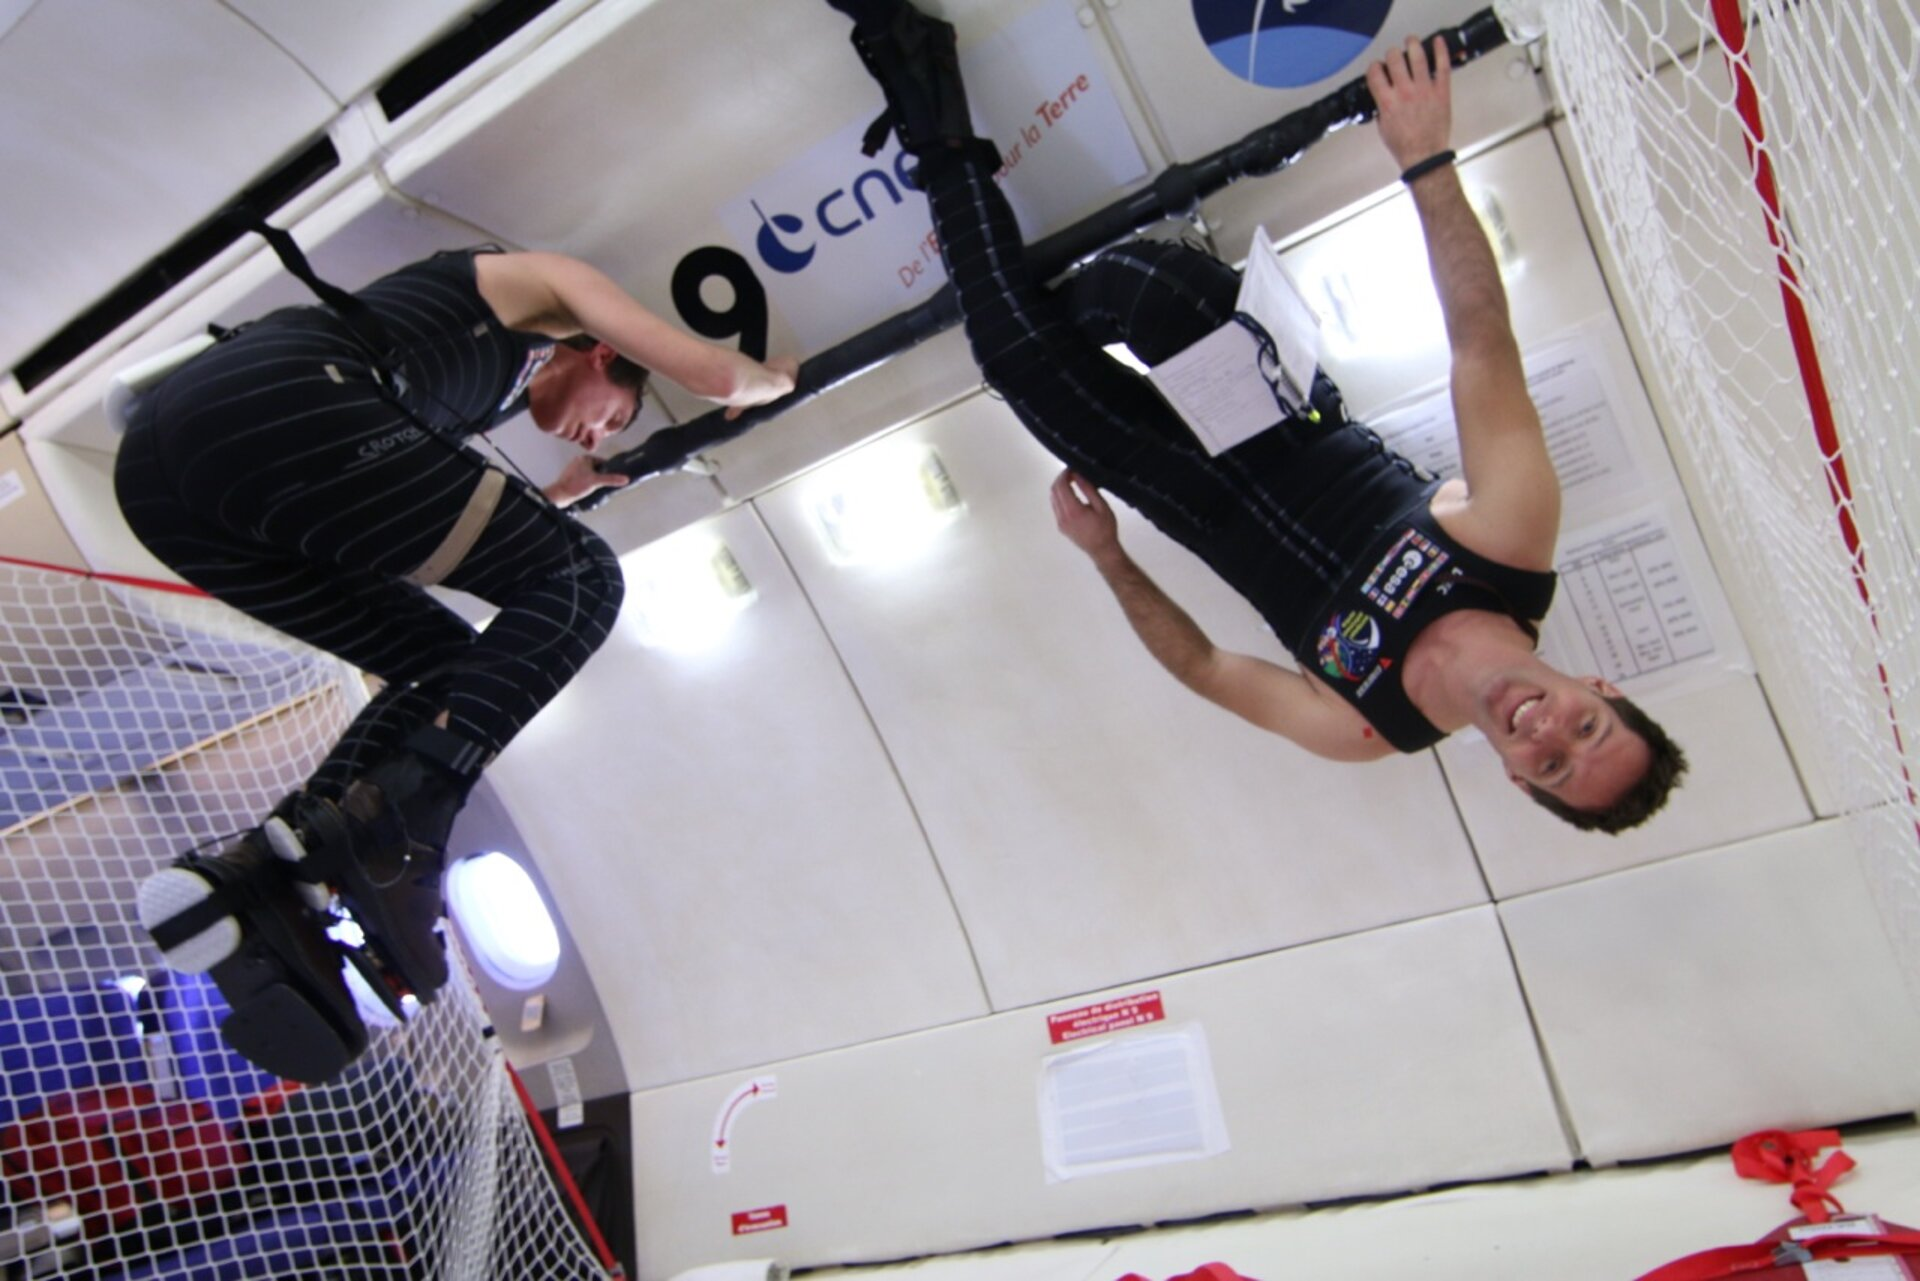 ESA astronaut Thomas Pesquet with skinsuit